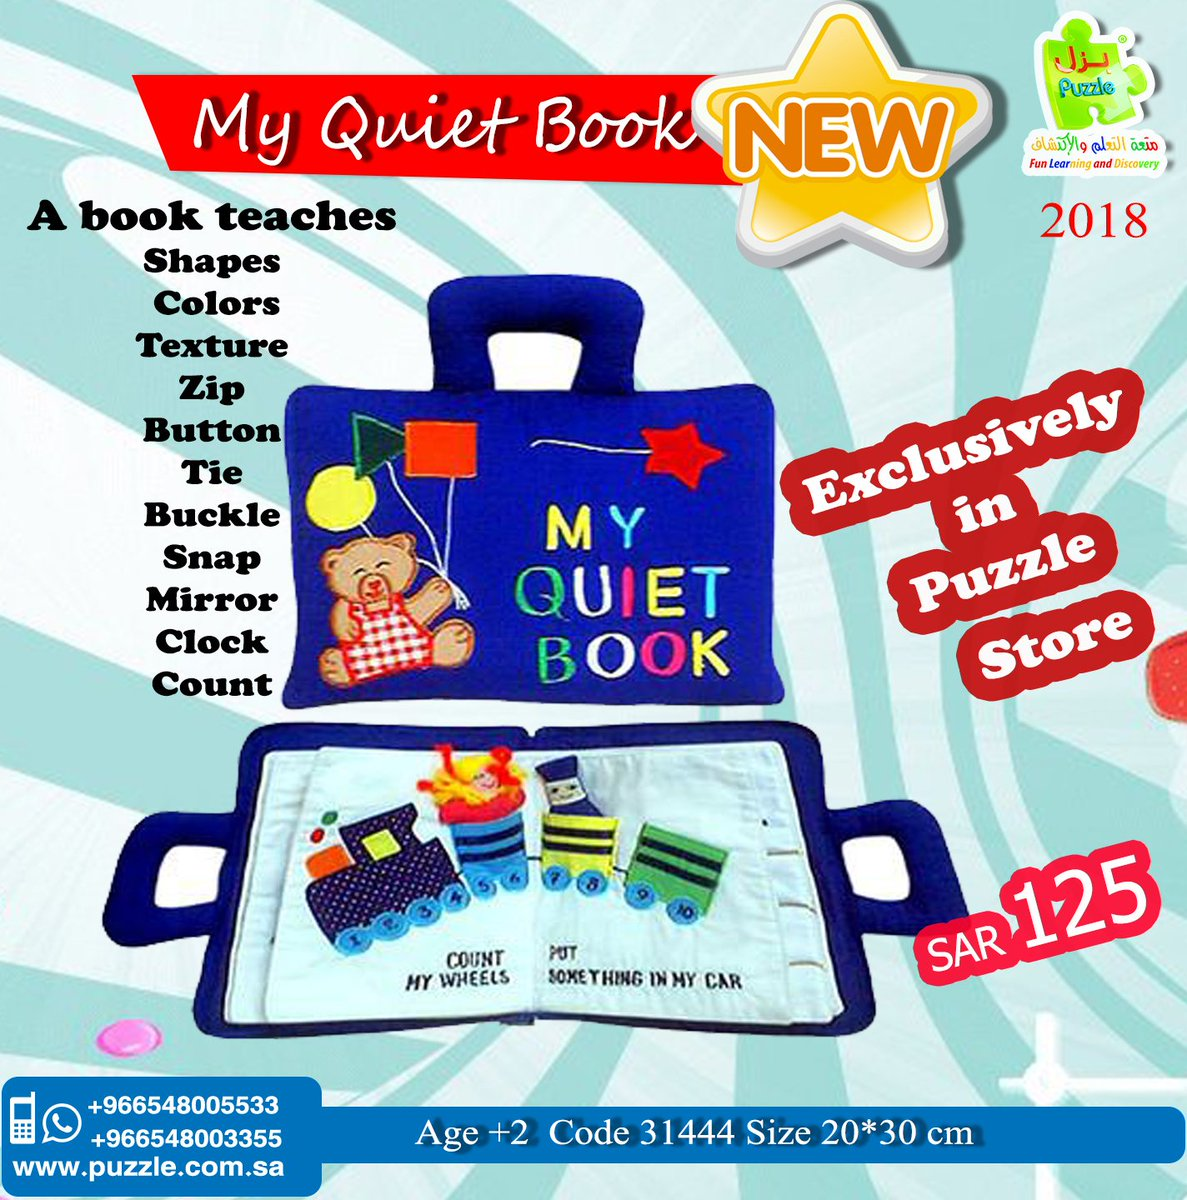 My_Quiet_Book hashtag on Twitter